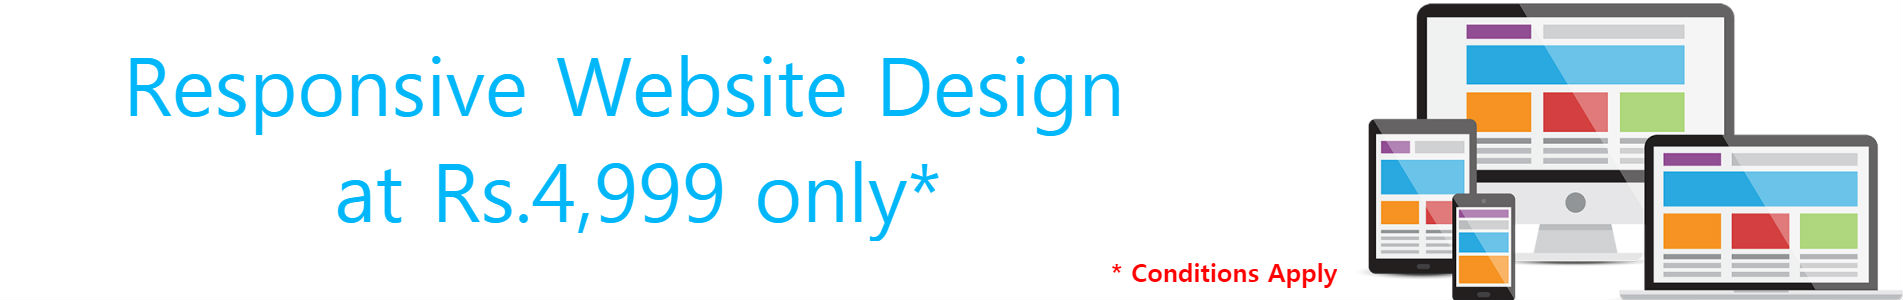 Web Designing Offers - Website Design in Bangalore at 4999 only